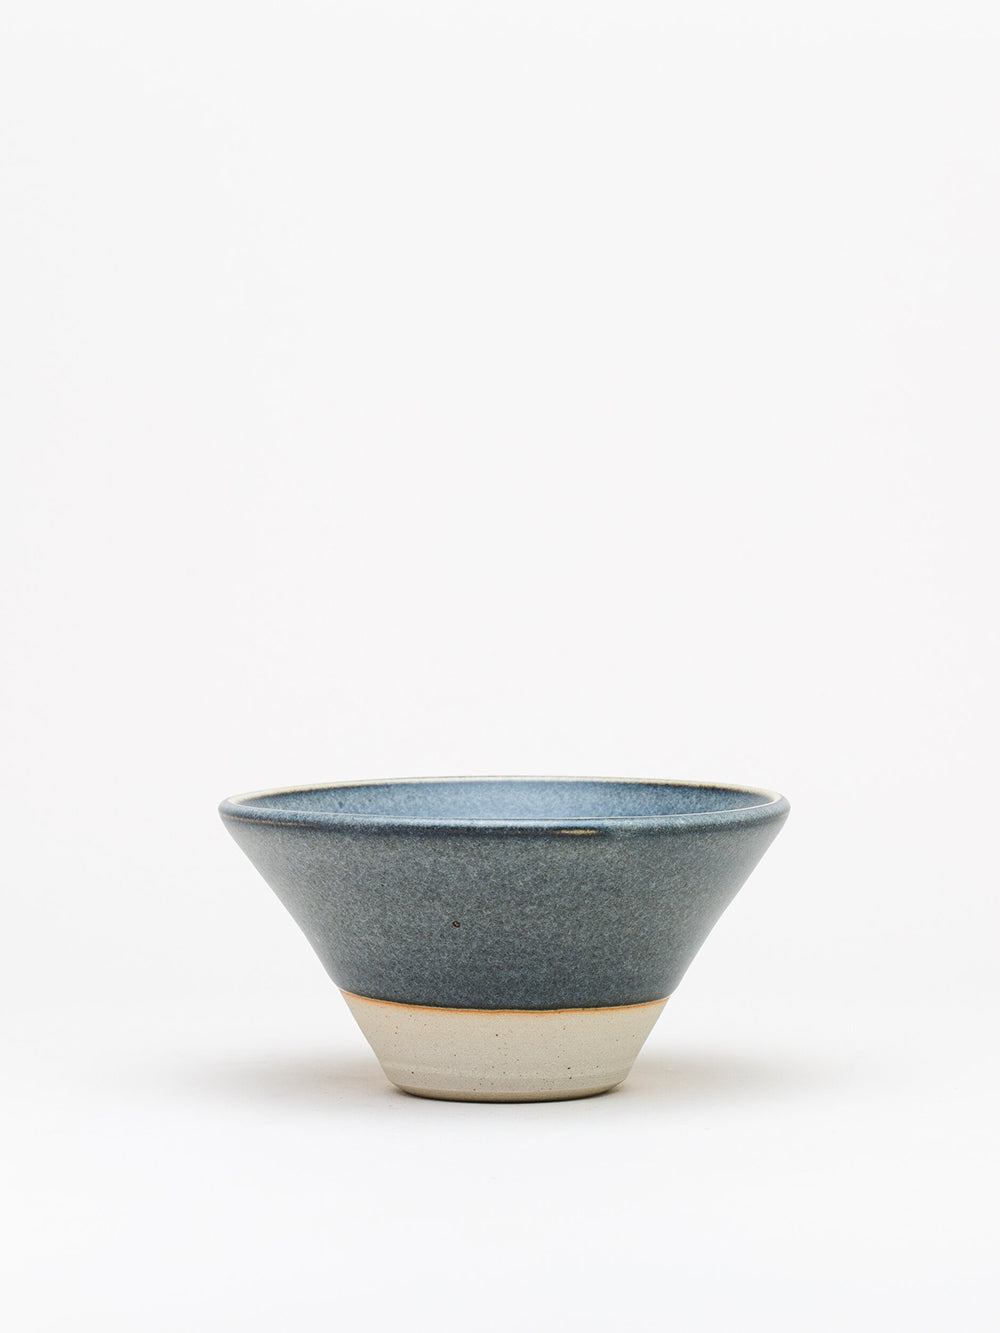 wrf medium v-bowl in ash